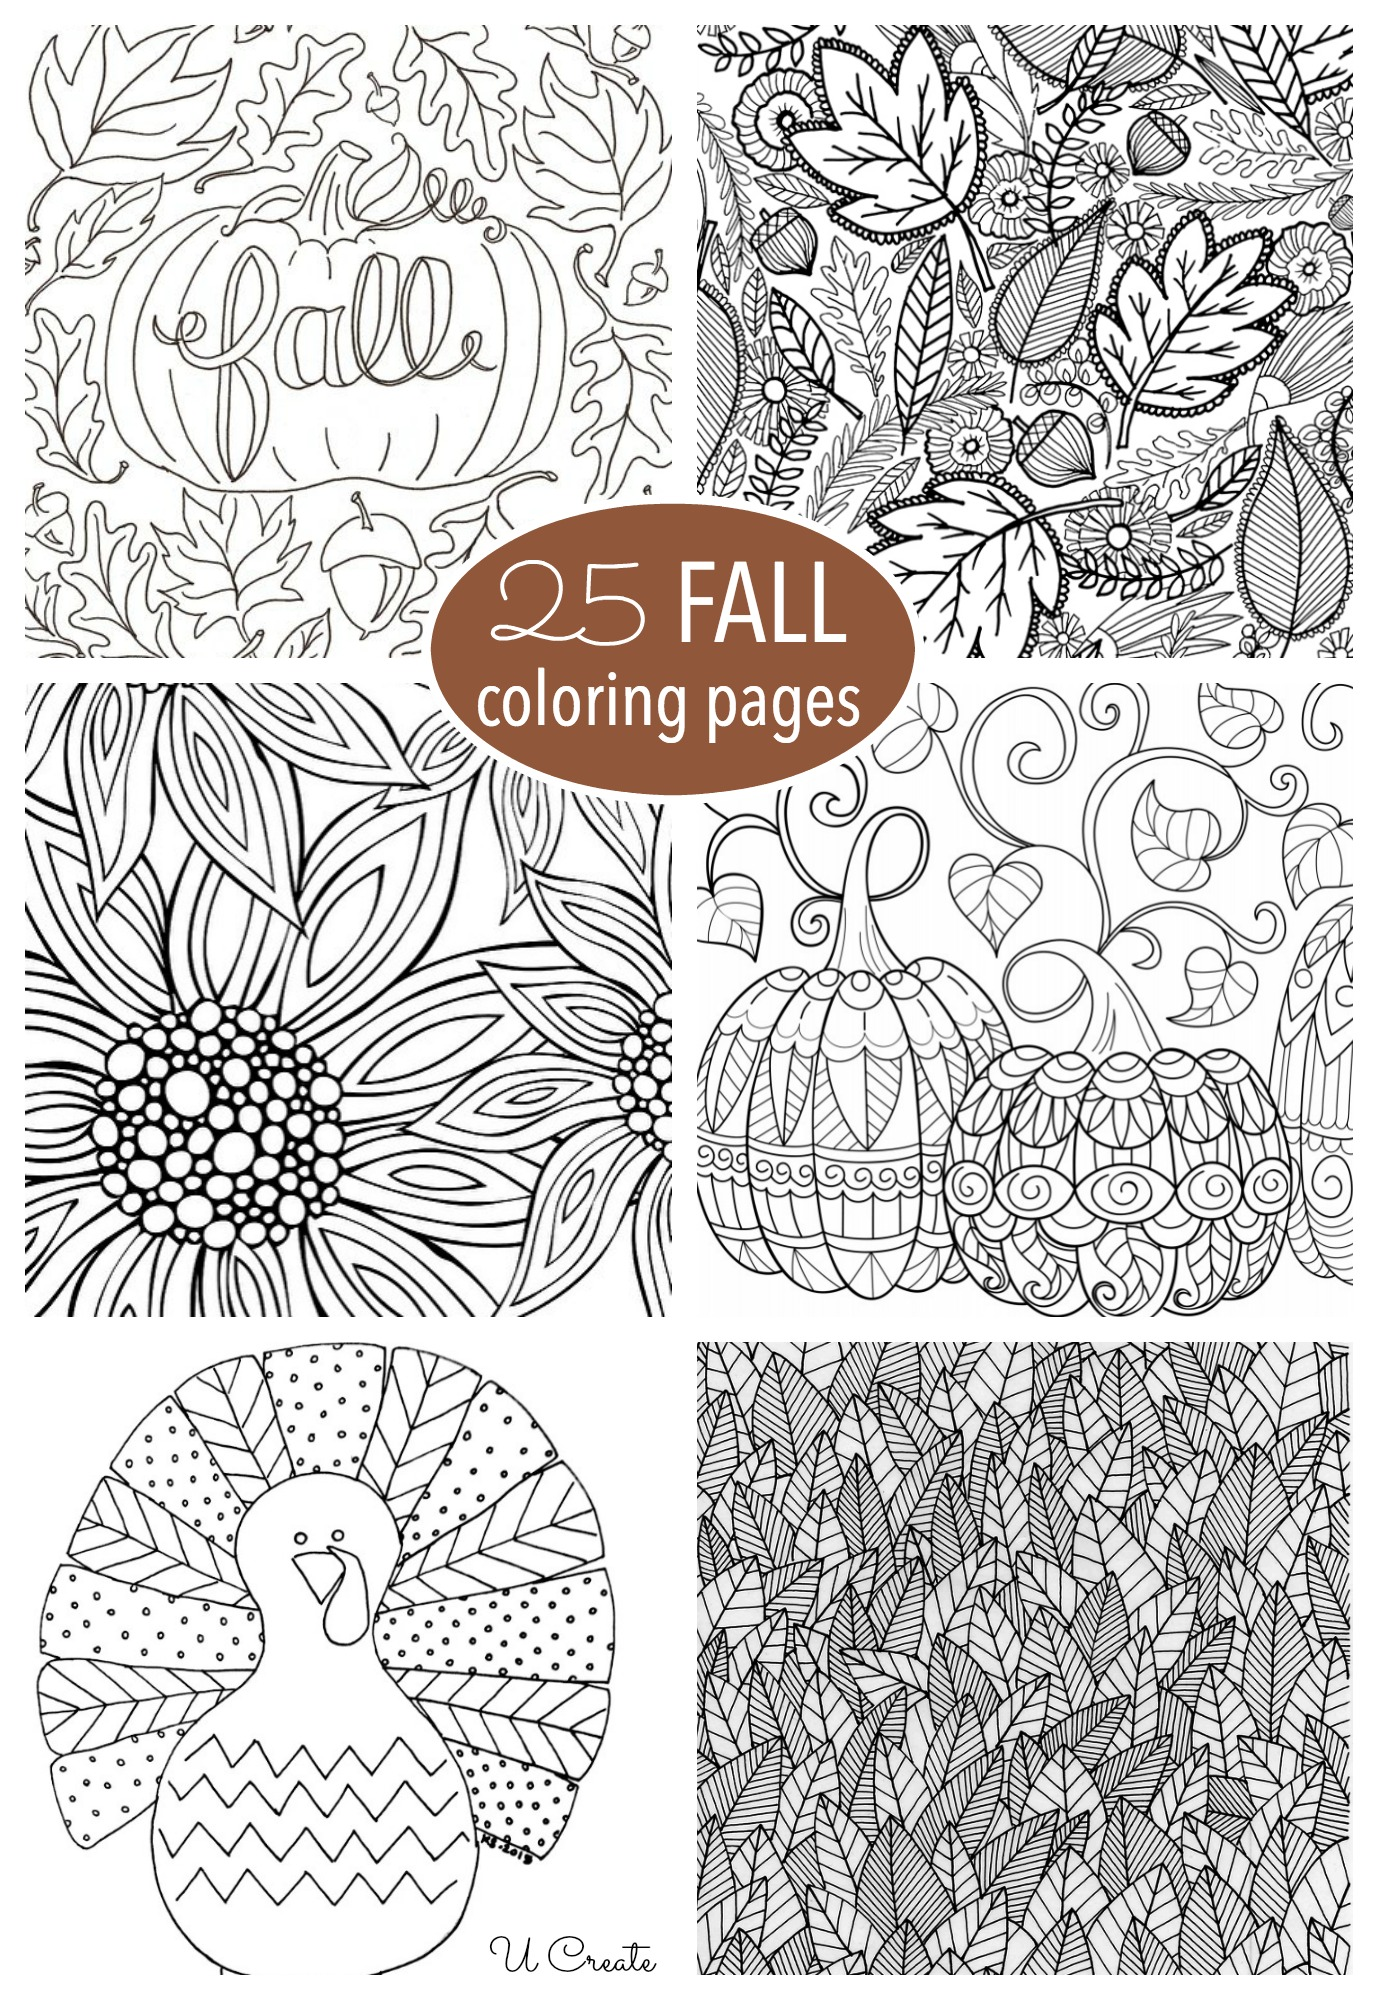 photo relating to Fall Coloring Pages Free Printable named Cost-free Tumble Grownup Coloring Webpages - U Generate